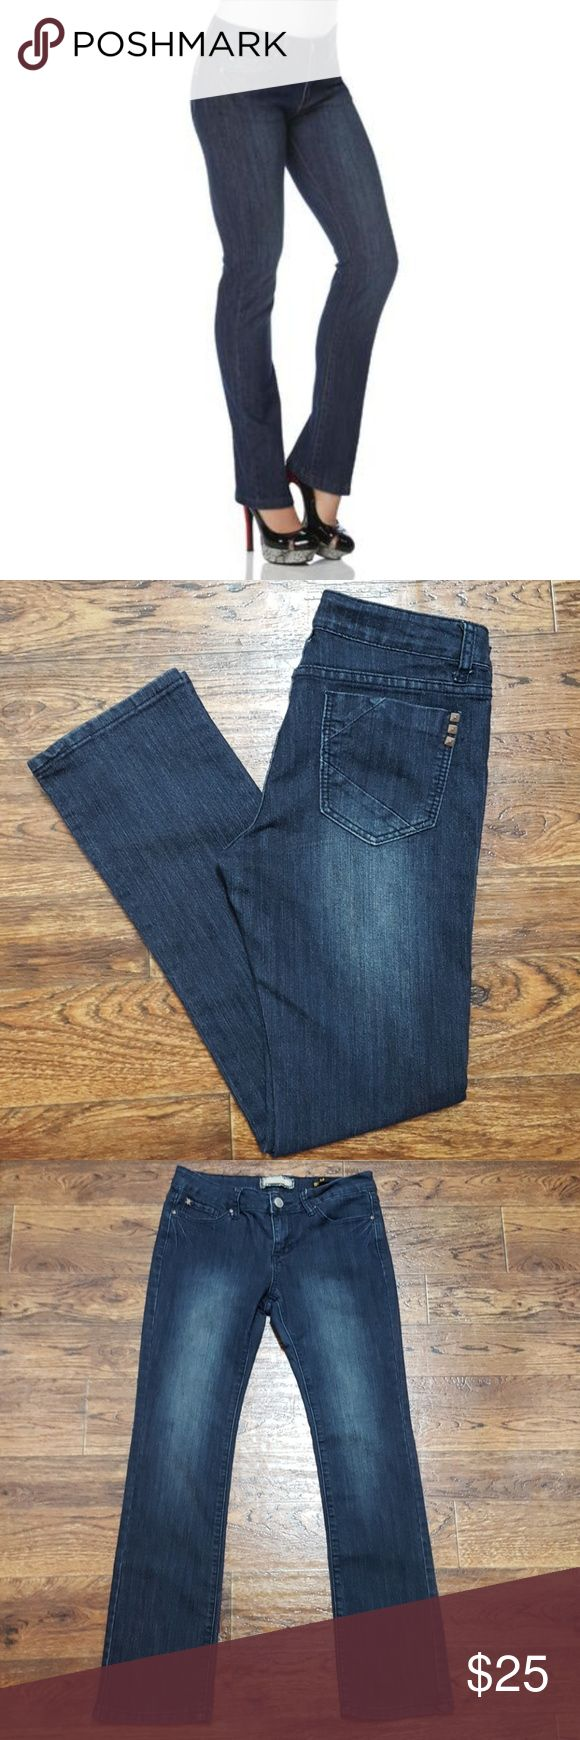 Kardashian Kollection The Kim Kim curvy straight leg jeans in a dark wash. Waist 15 inches across, inseam 29 inches. Kardashian Kollection Jeans Straight Leg